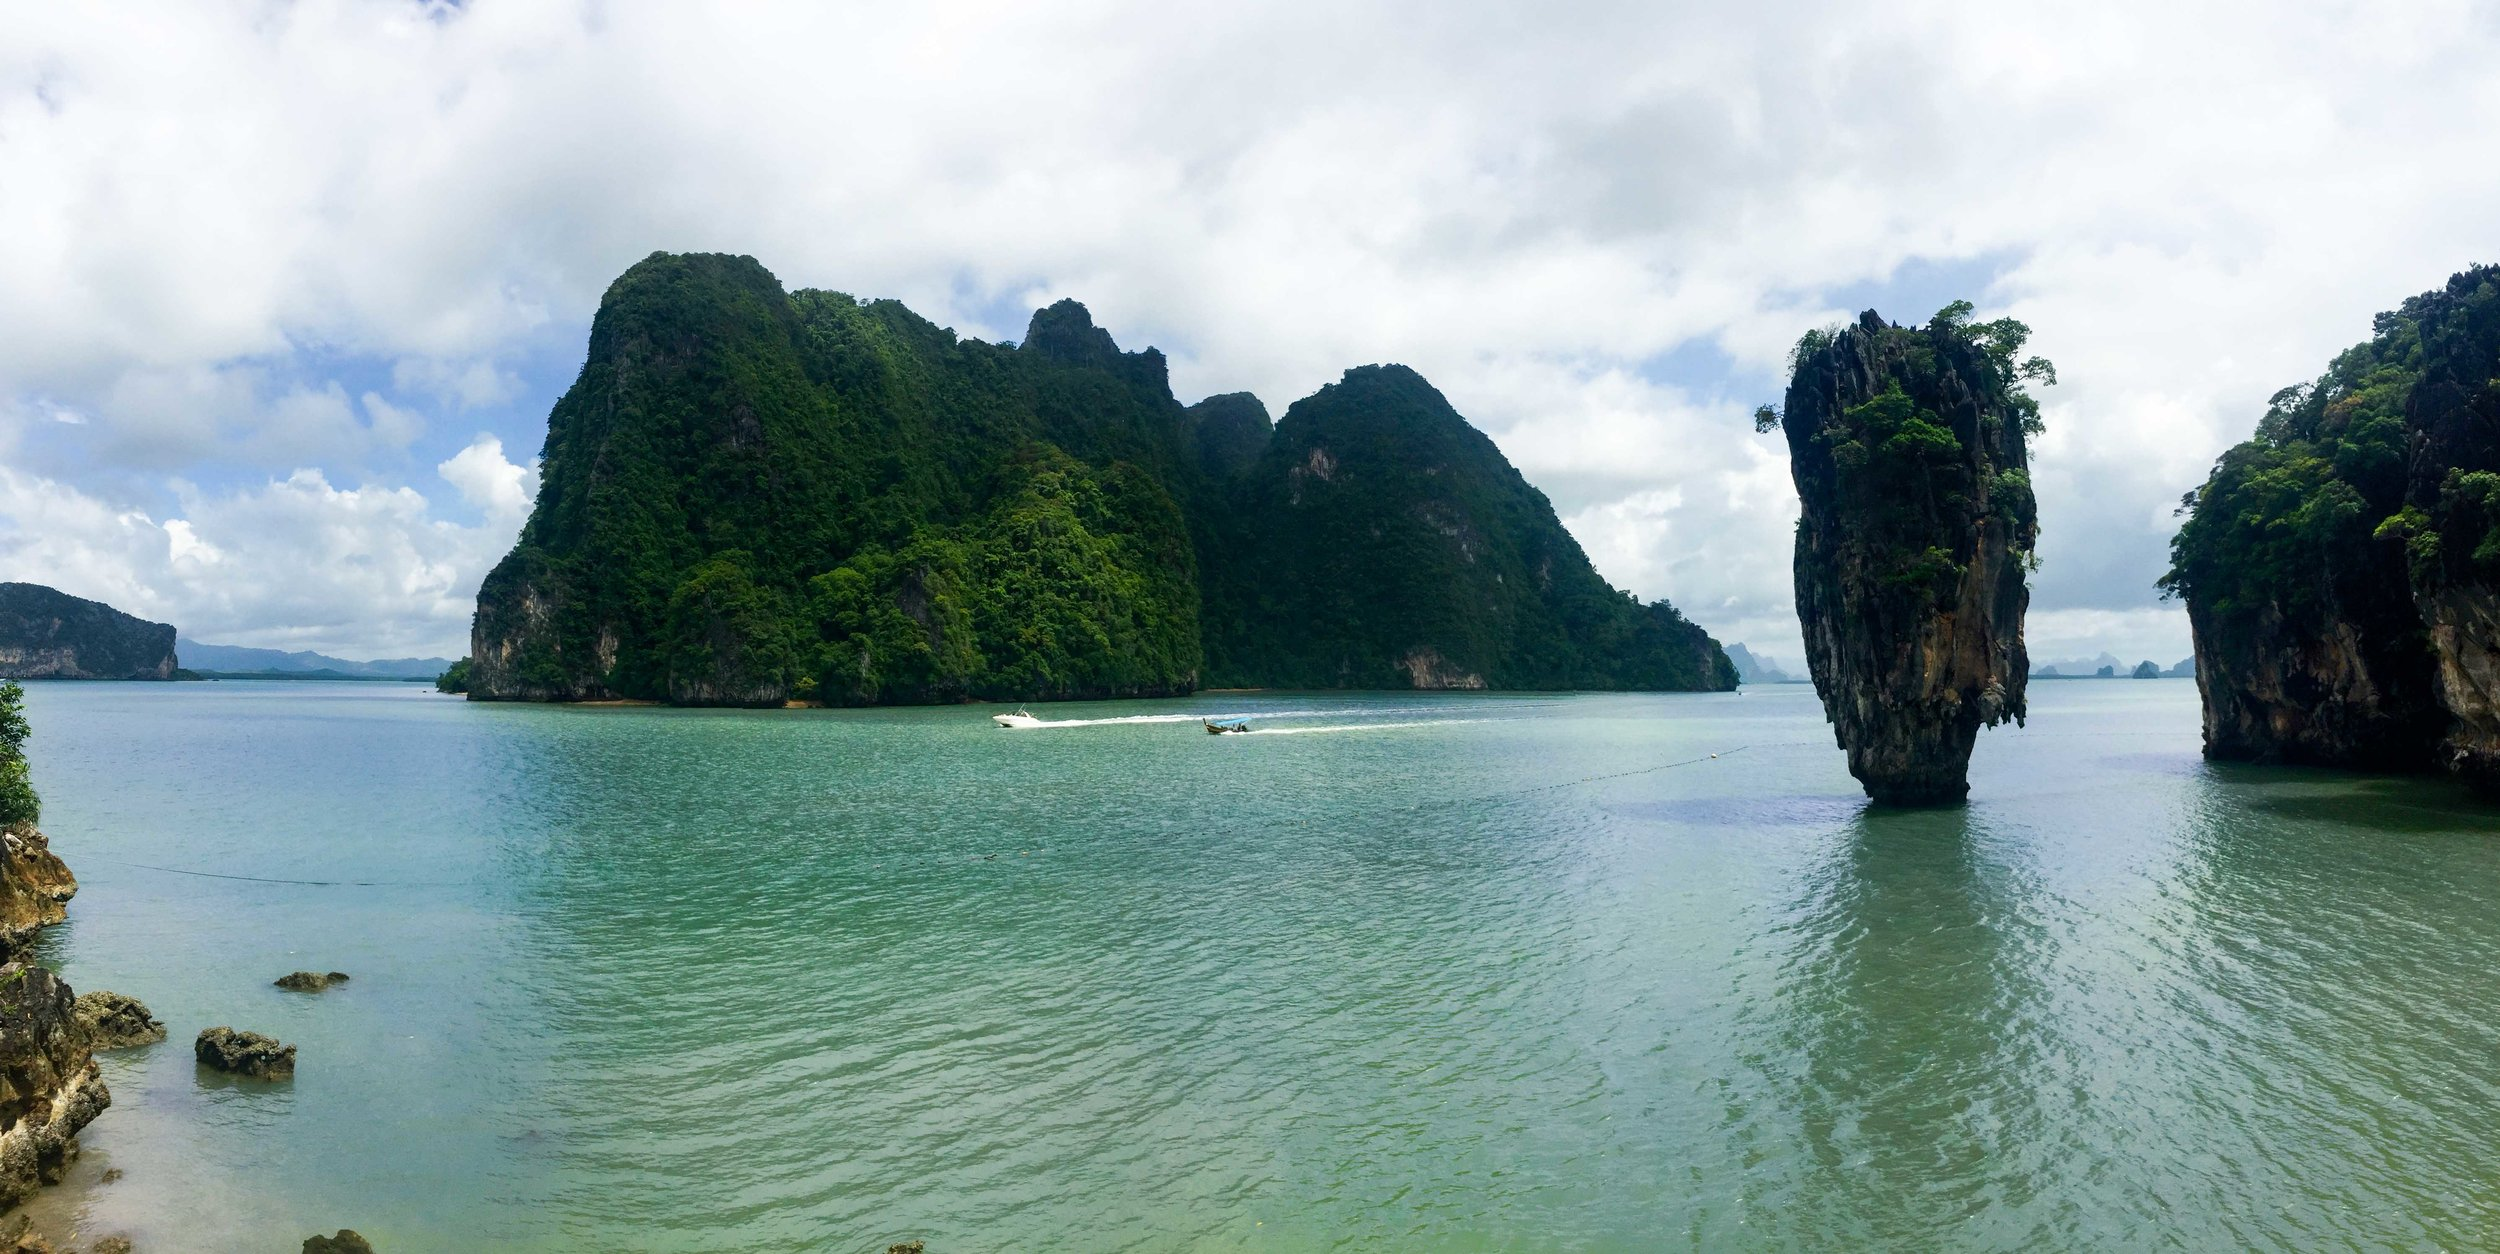 One of the most beautiful places in all of Thailand - James Bond Island or Phang Nga Bay